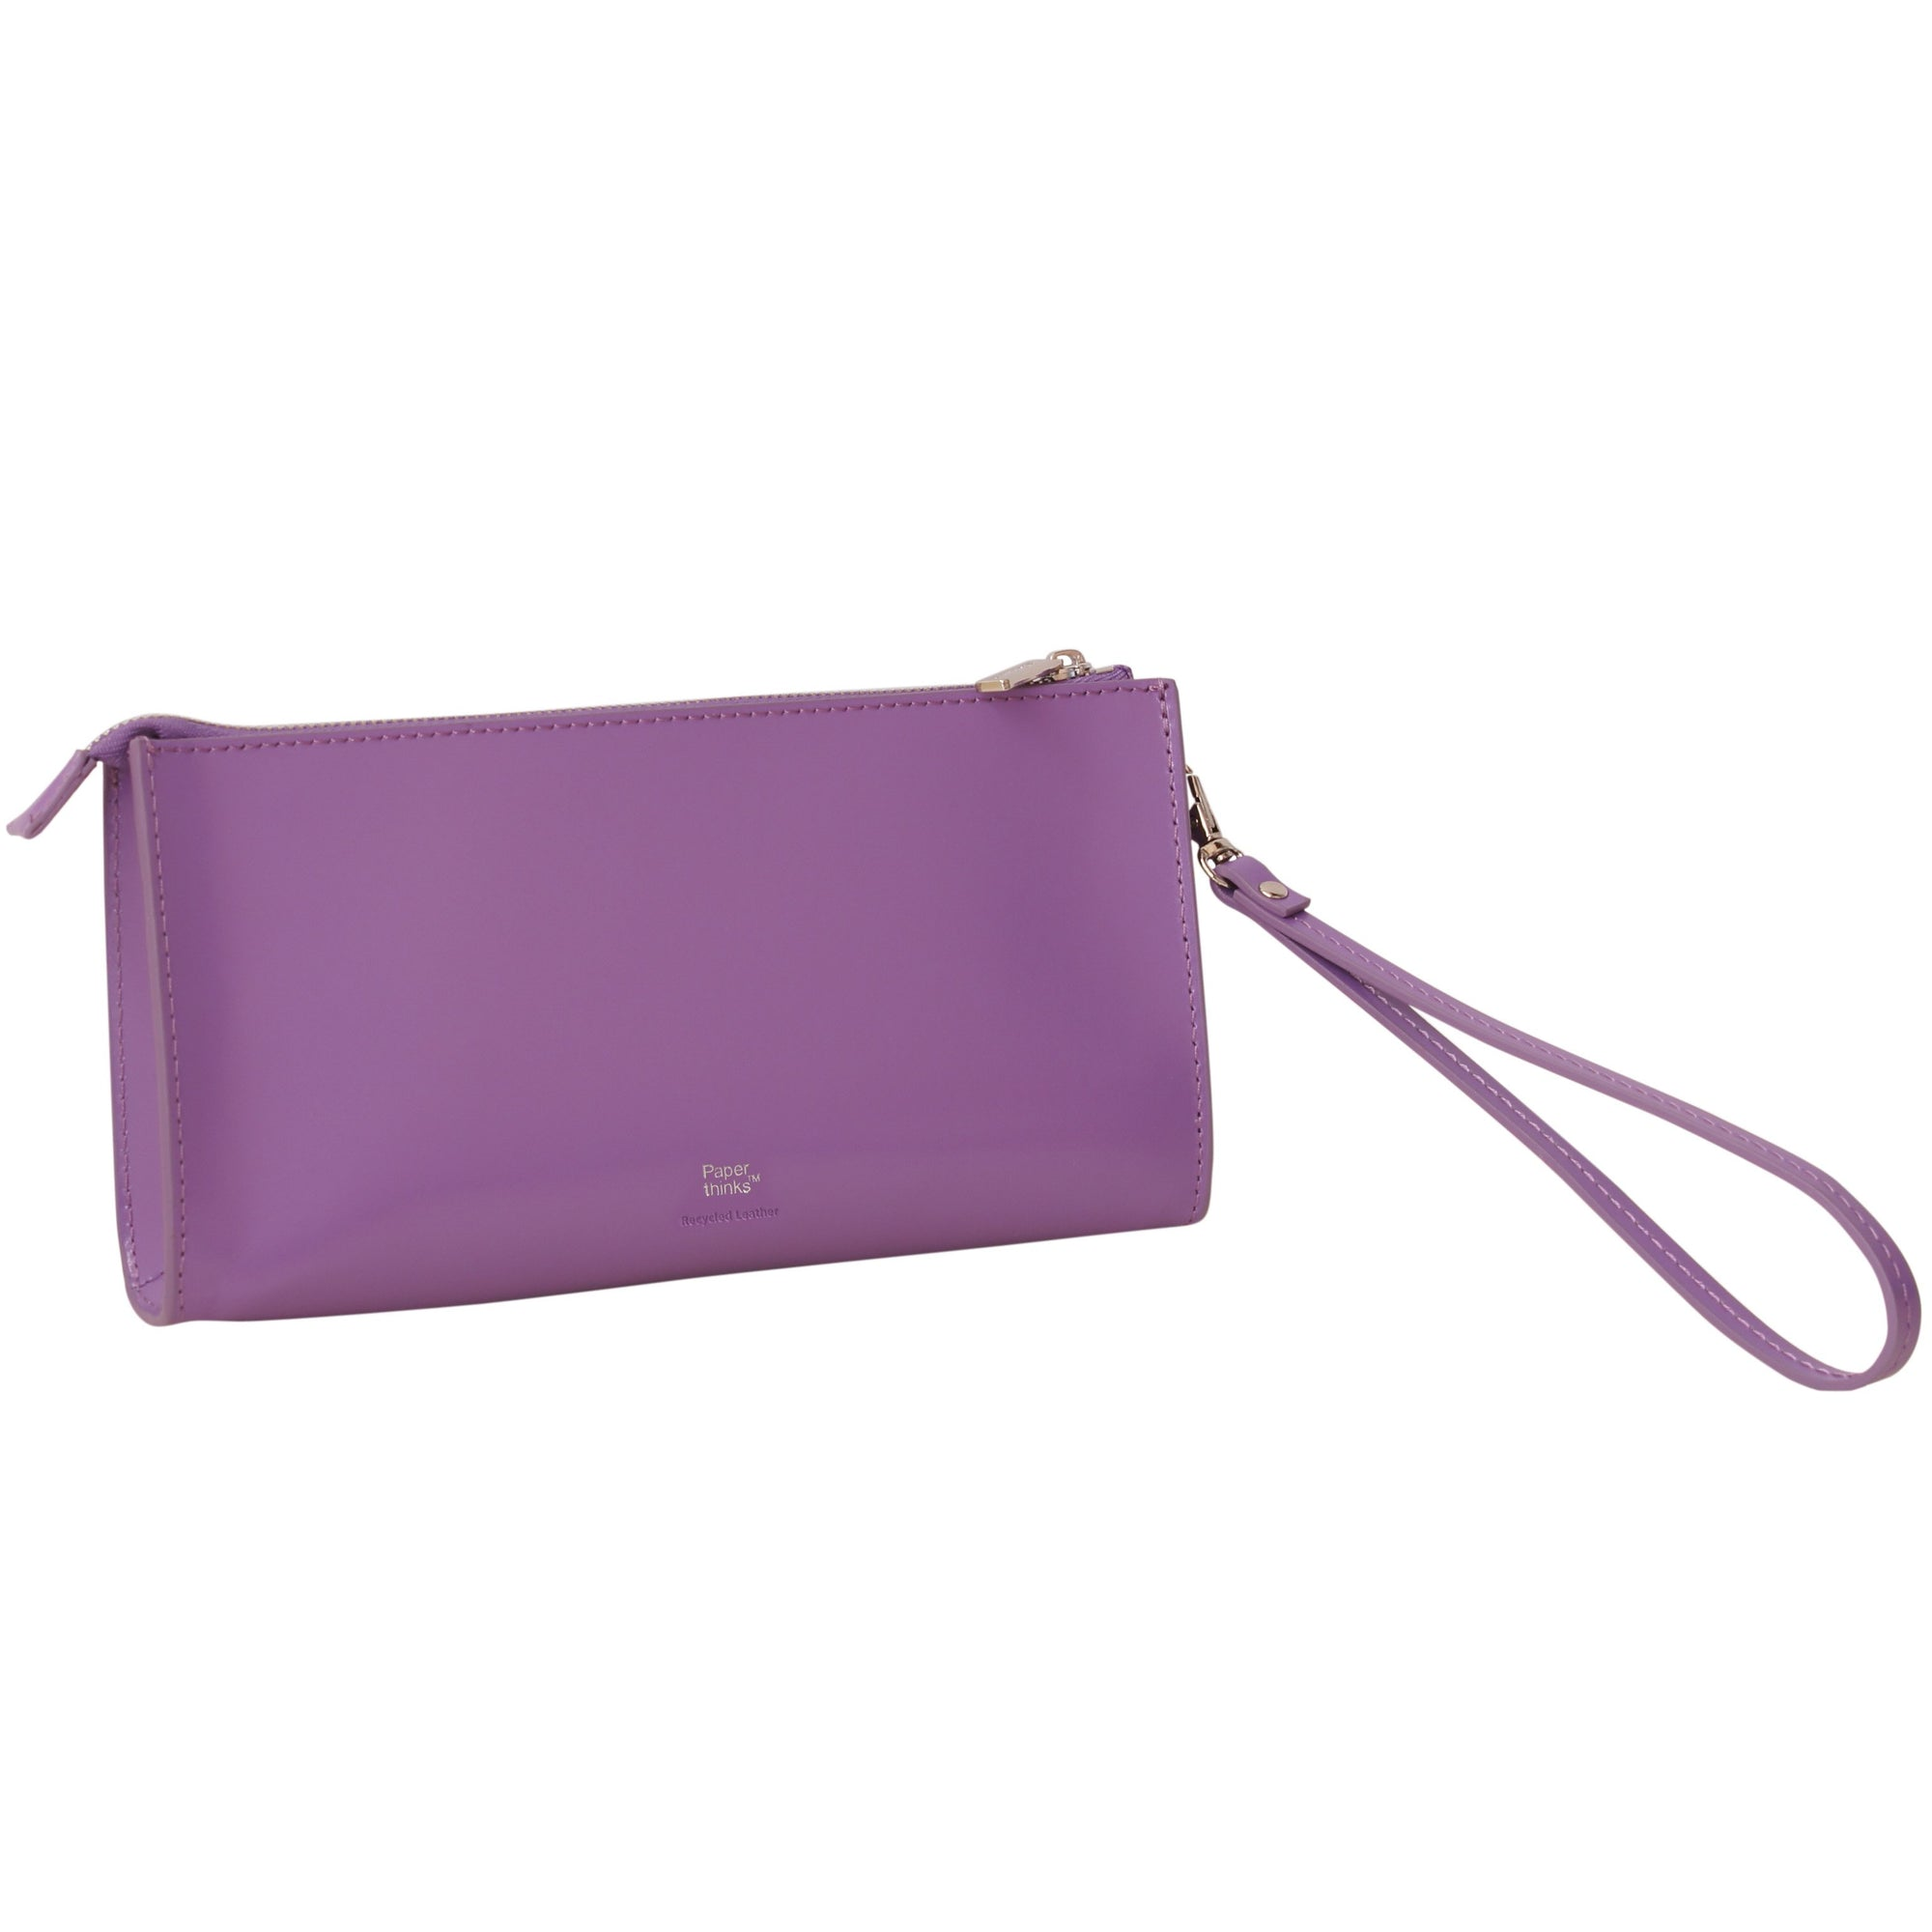 Paperthinks Recycled Leather Clutch Bag with Detachable Wrist Band-NA11398